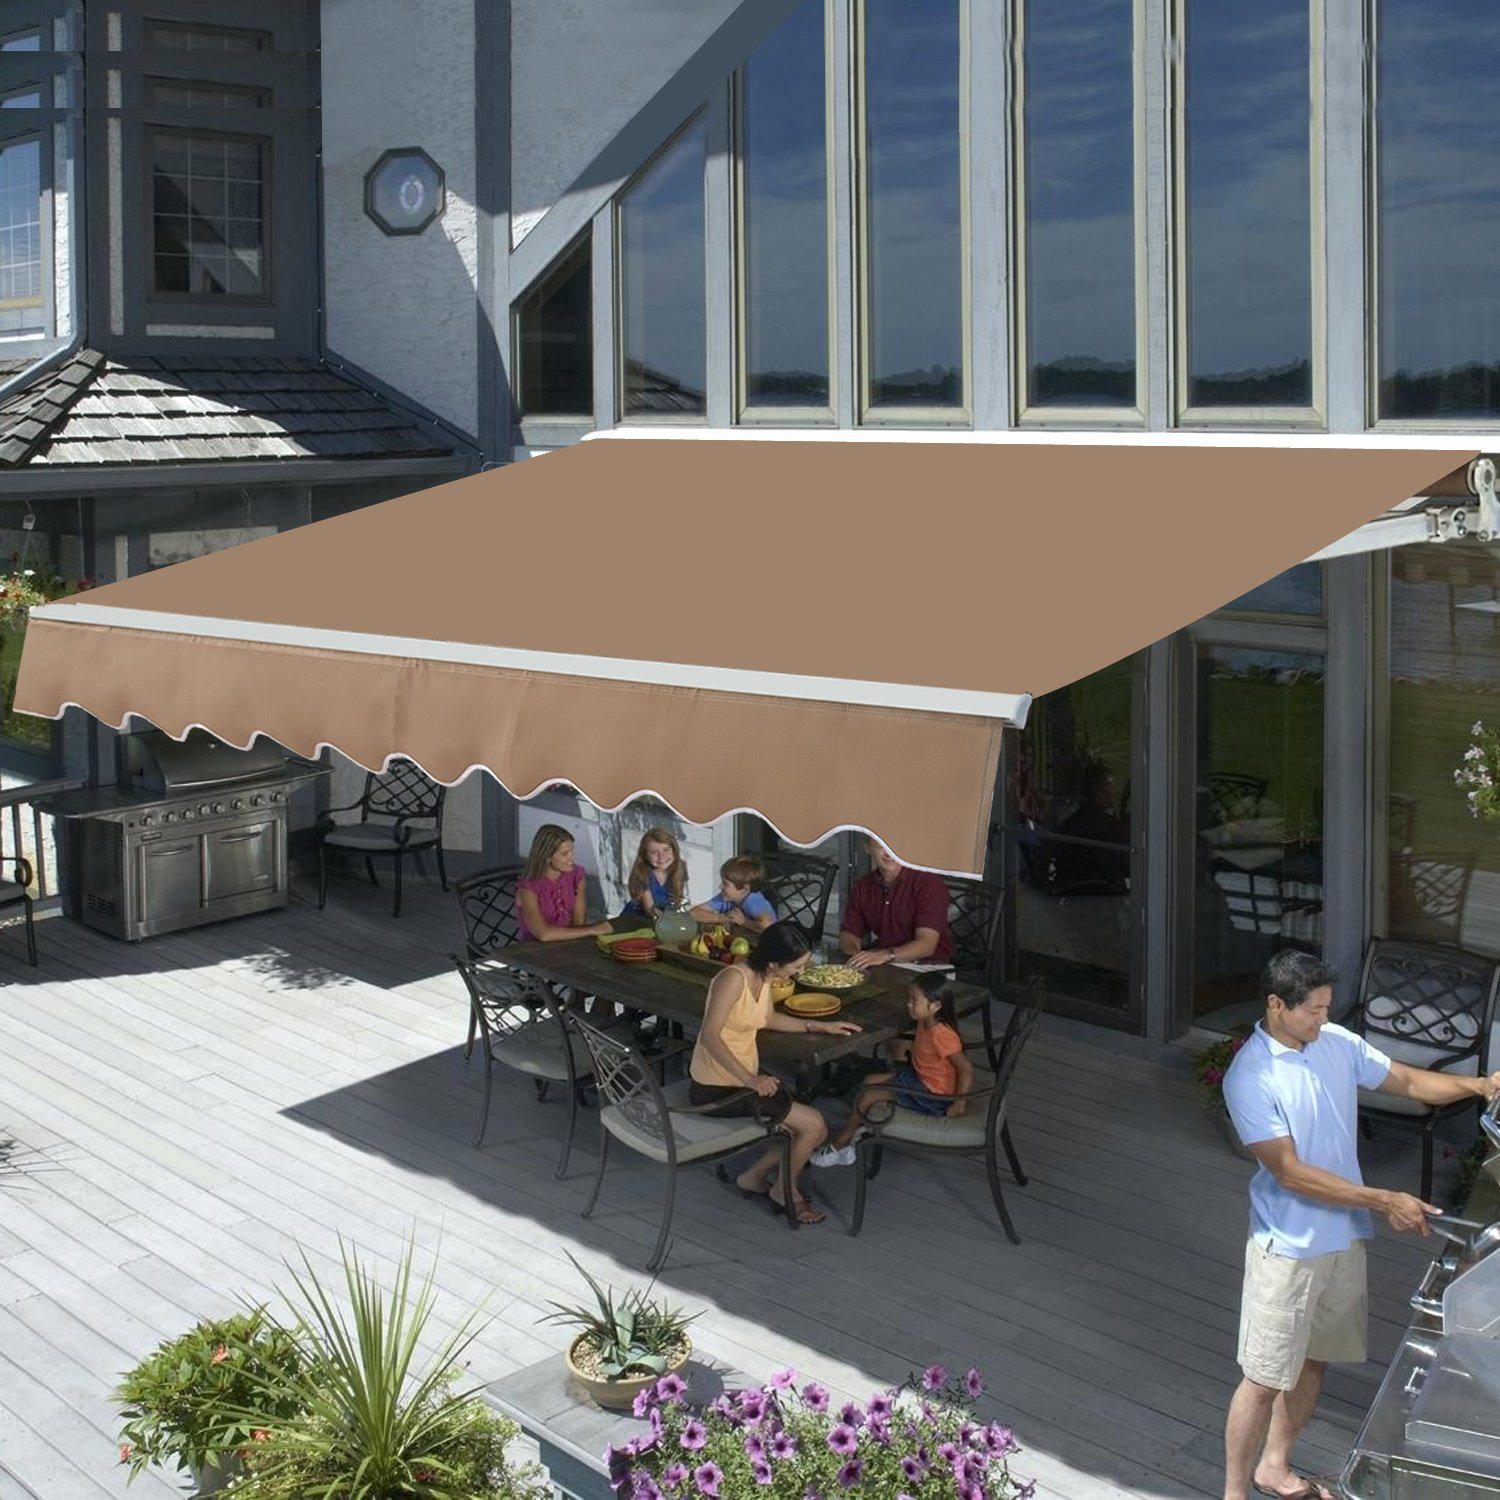 canopy outdoor pool pin awning beautiful living shade install your stationary deck by